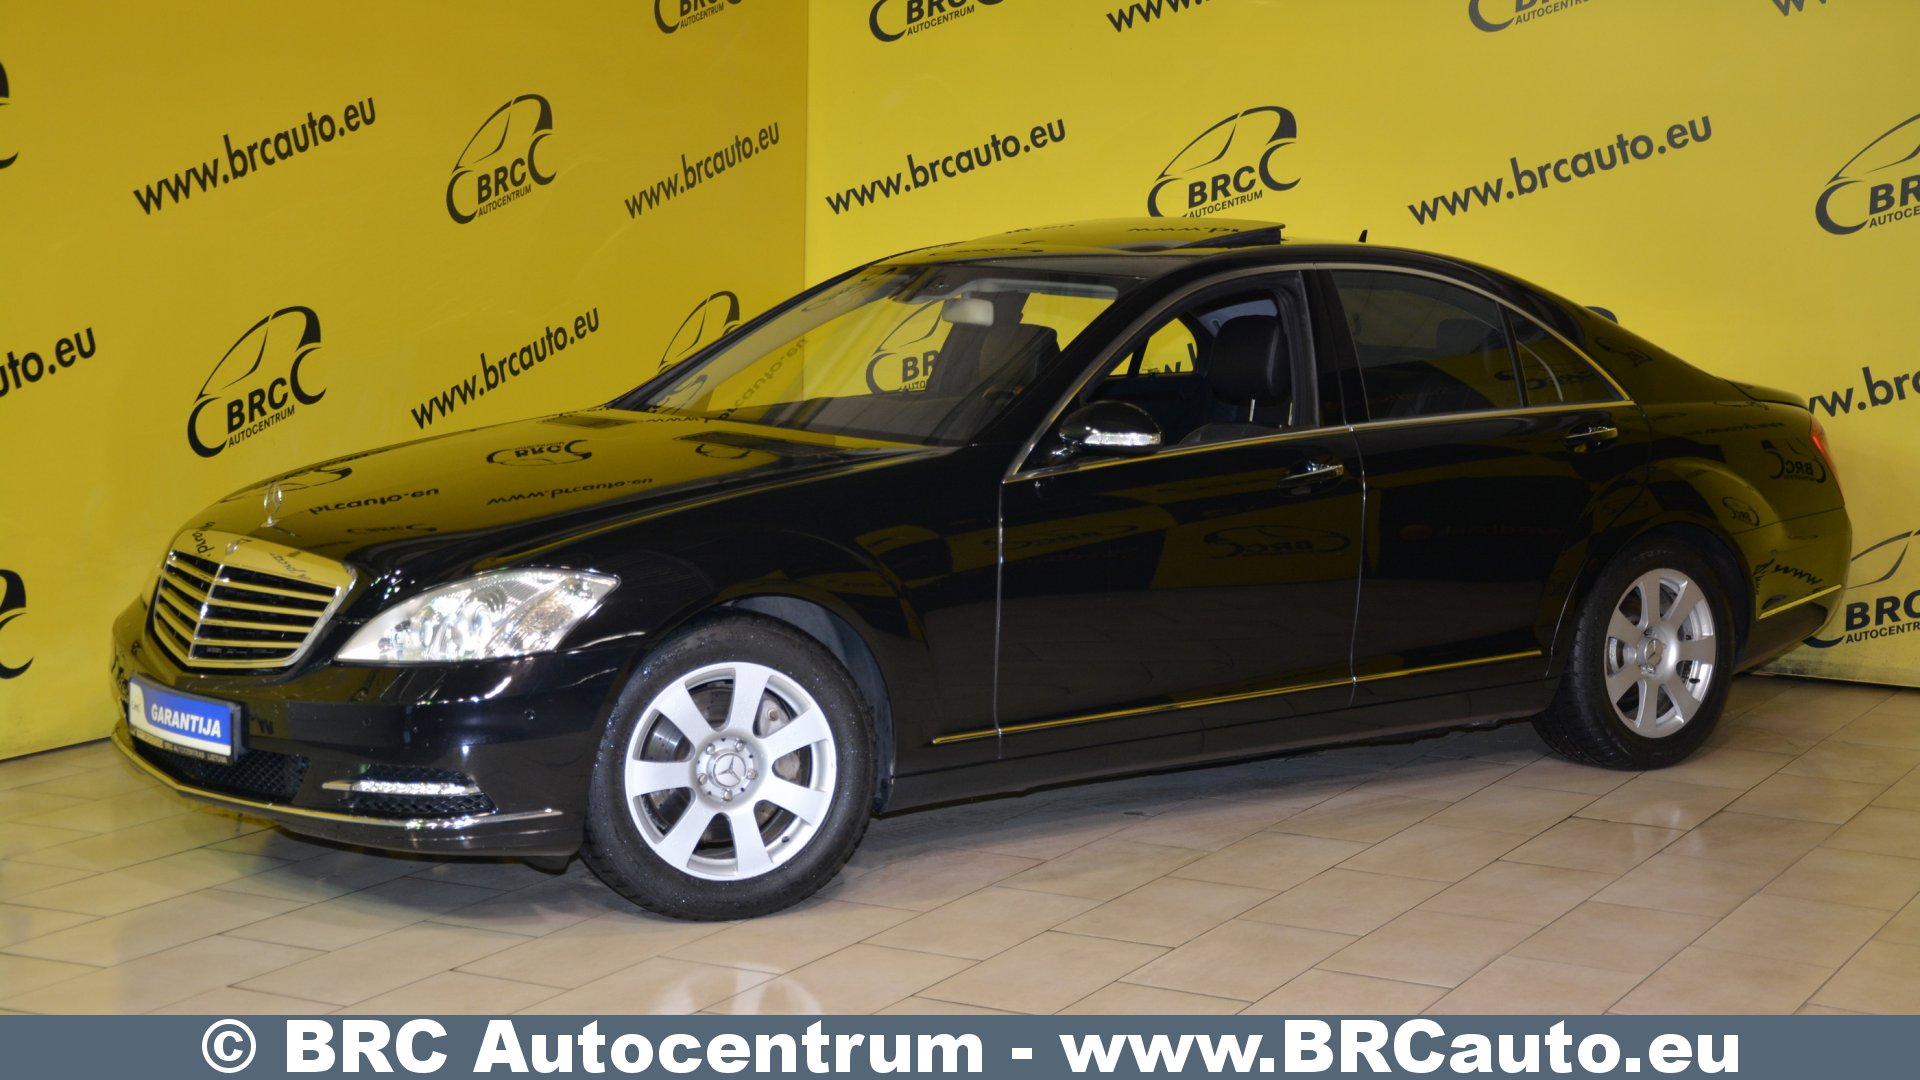 Mercedes benz s 350 i v6 automatas no 81 brc autocentrum for Mercedes benz s 350